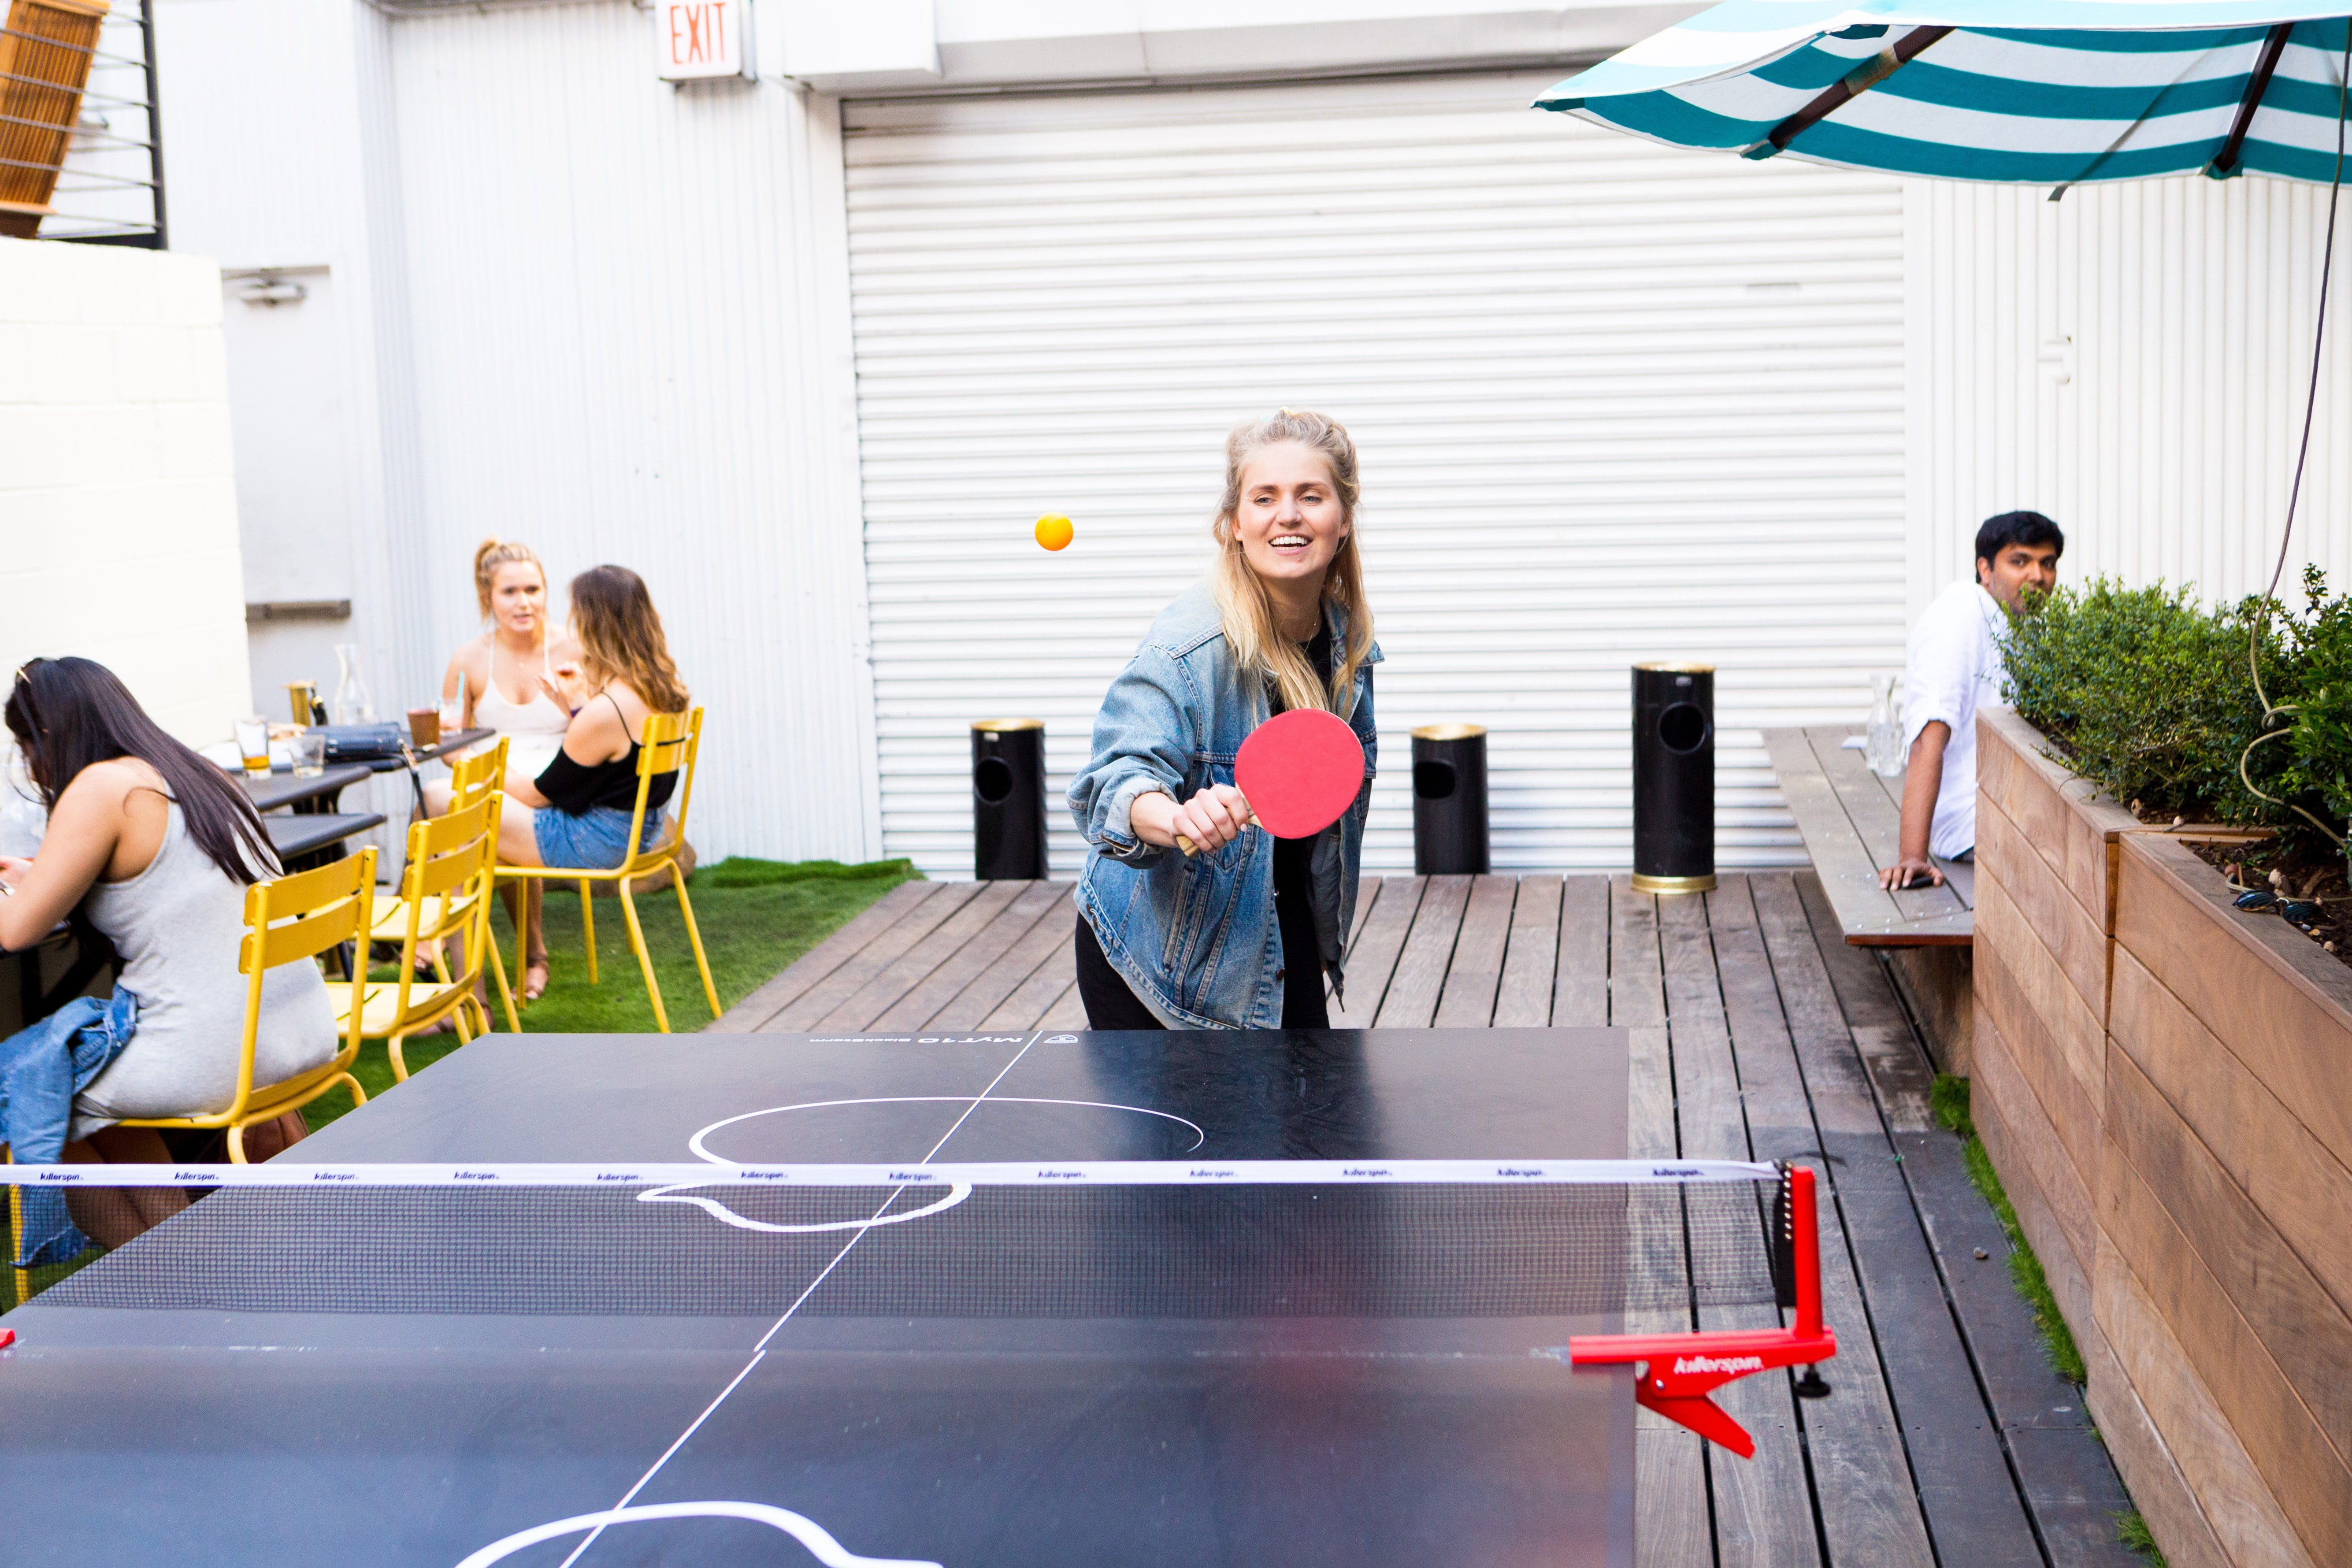 Mette playing table tennis in Brooklyn